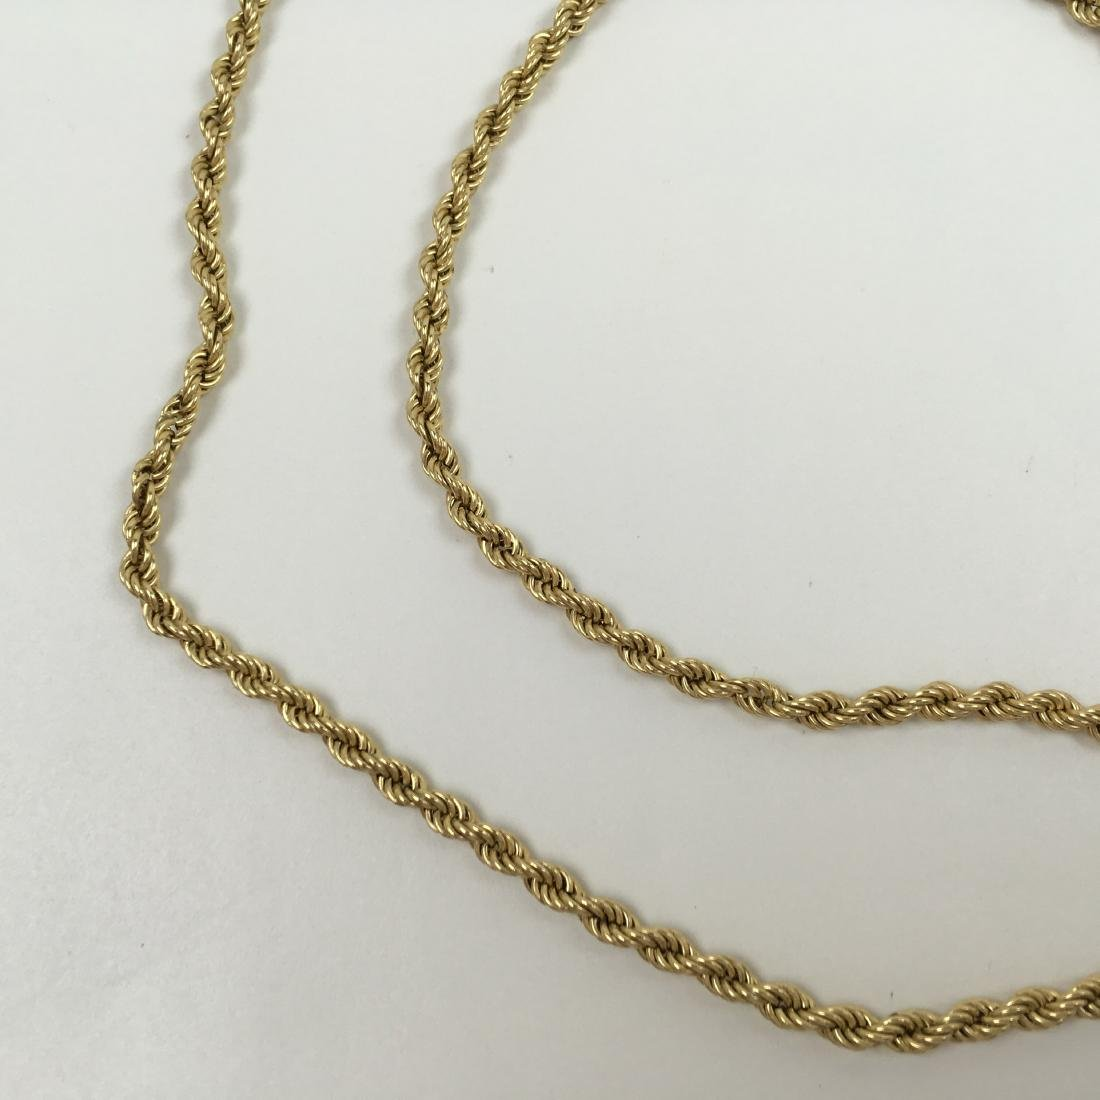 """14K YELLOW GOLD 31.75"""" ROPE NECKLACE - 9"""